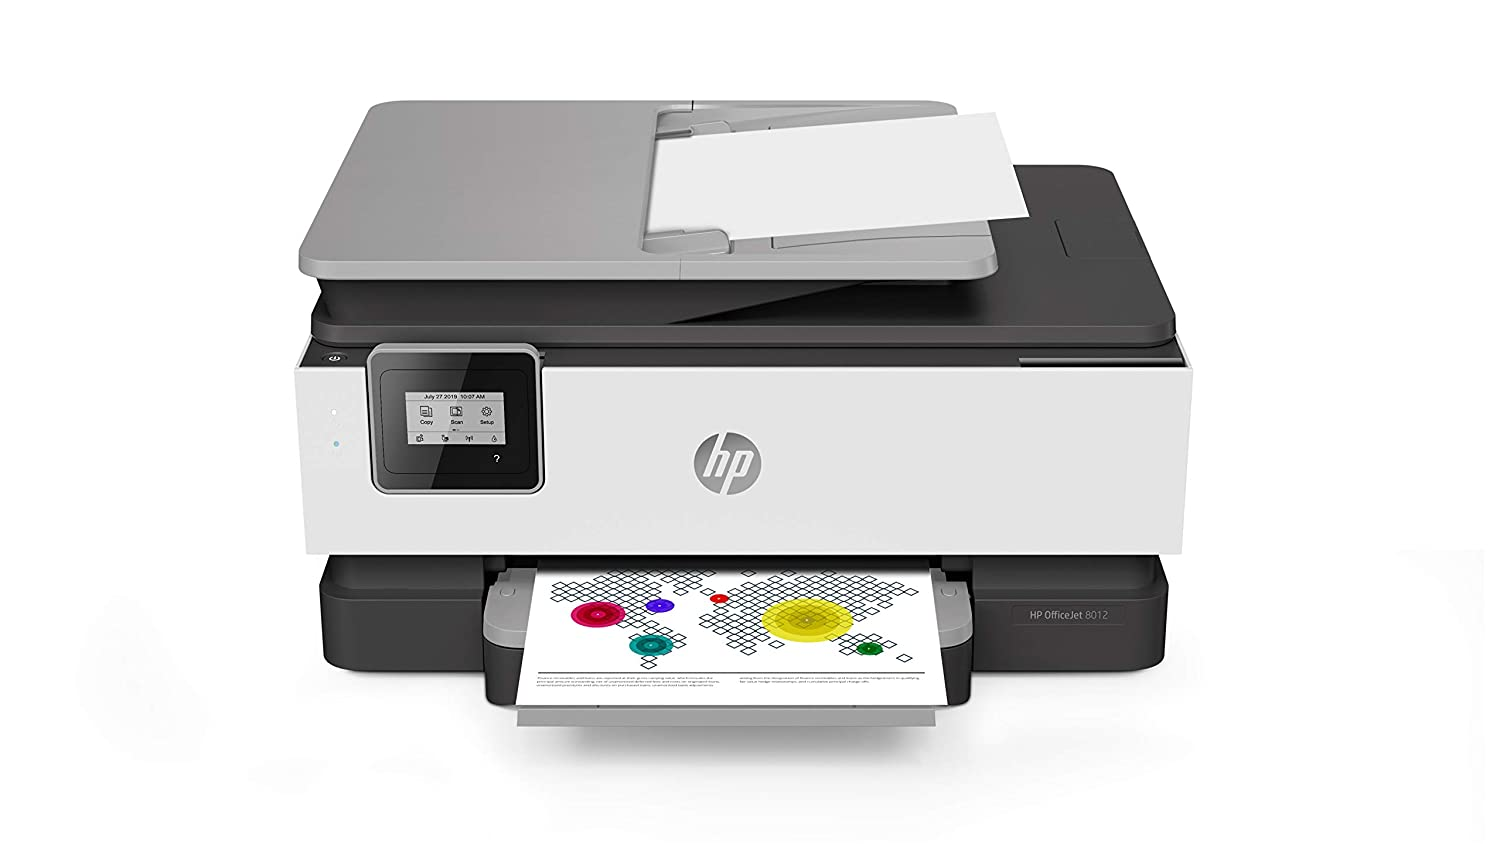 Compatible with Alexa and Google Assistant Scan HP OfficeJet Pro 9016 All-in-One Wireless Printer Copy From Your Phone and Voice Activated Instant Ink Ready with 2 Months Trial Included Print